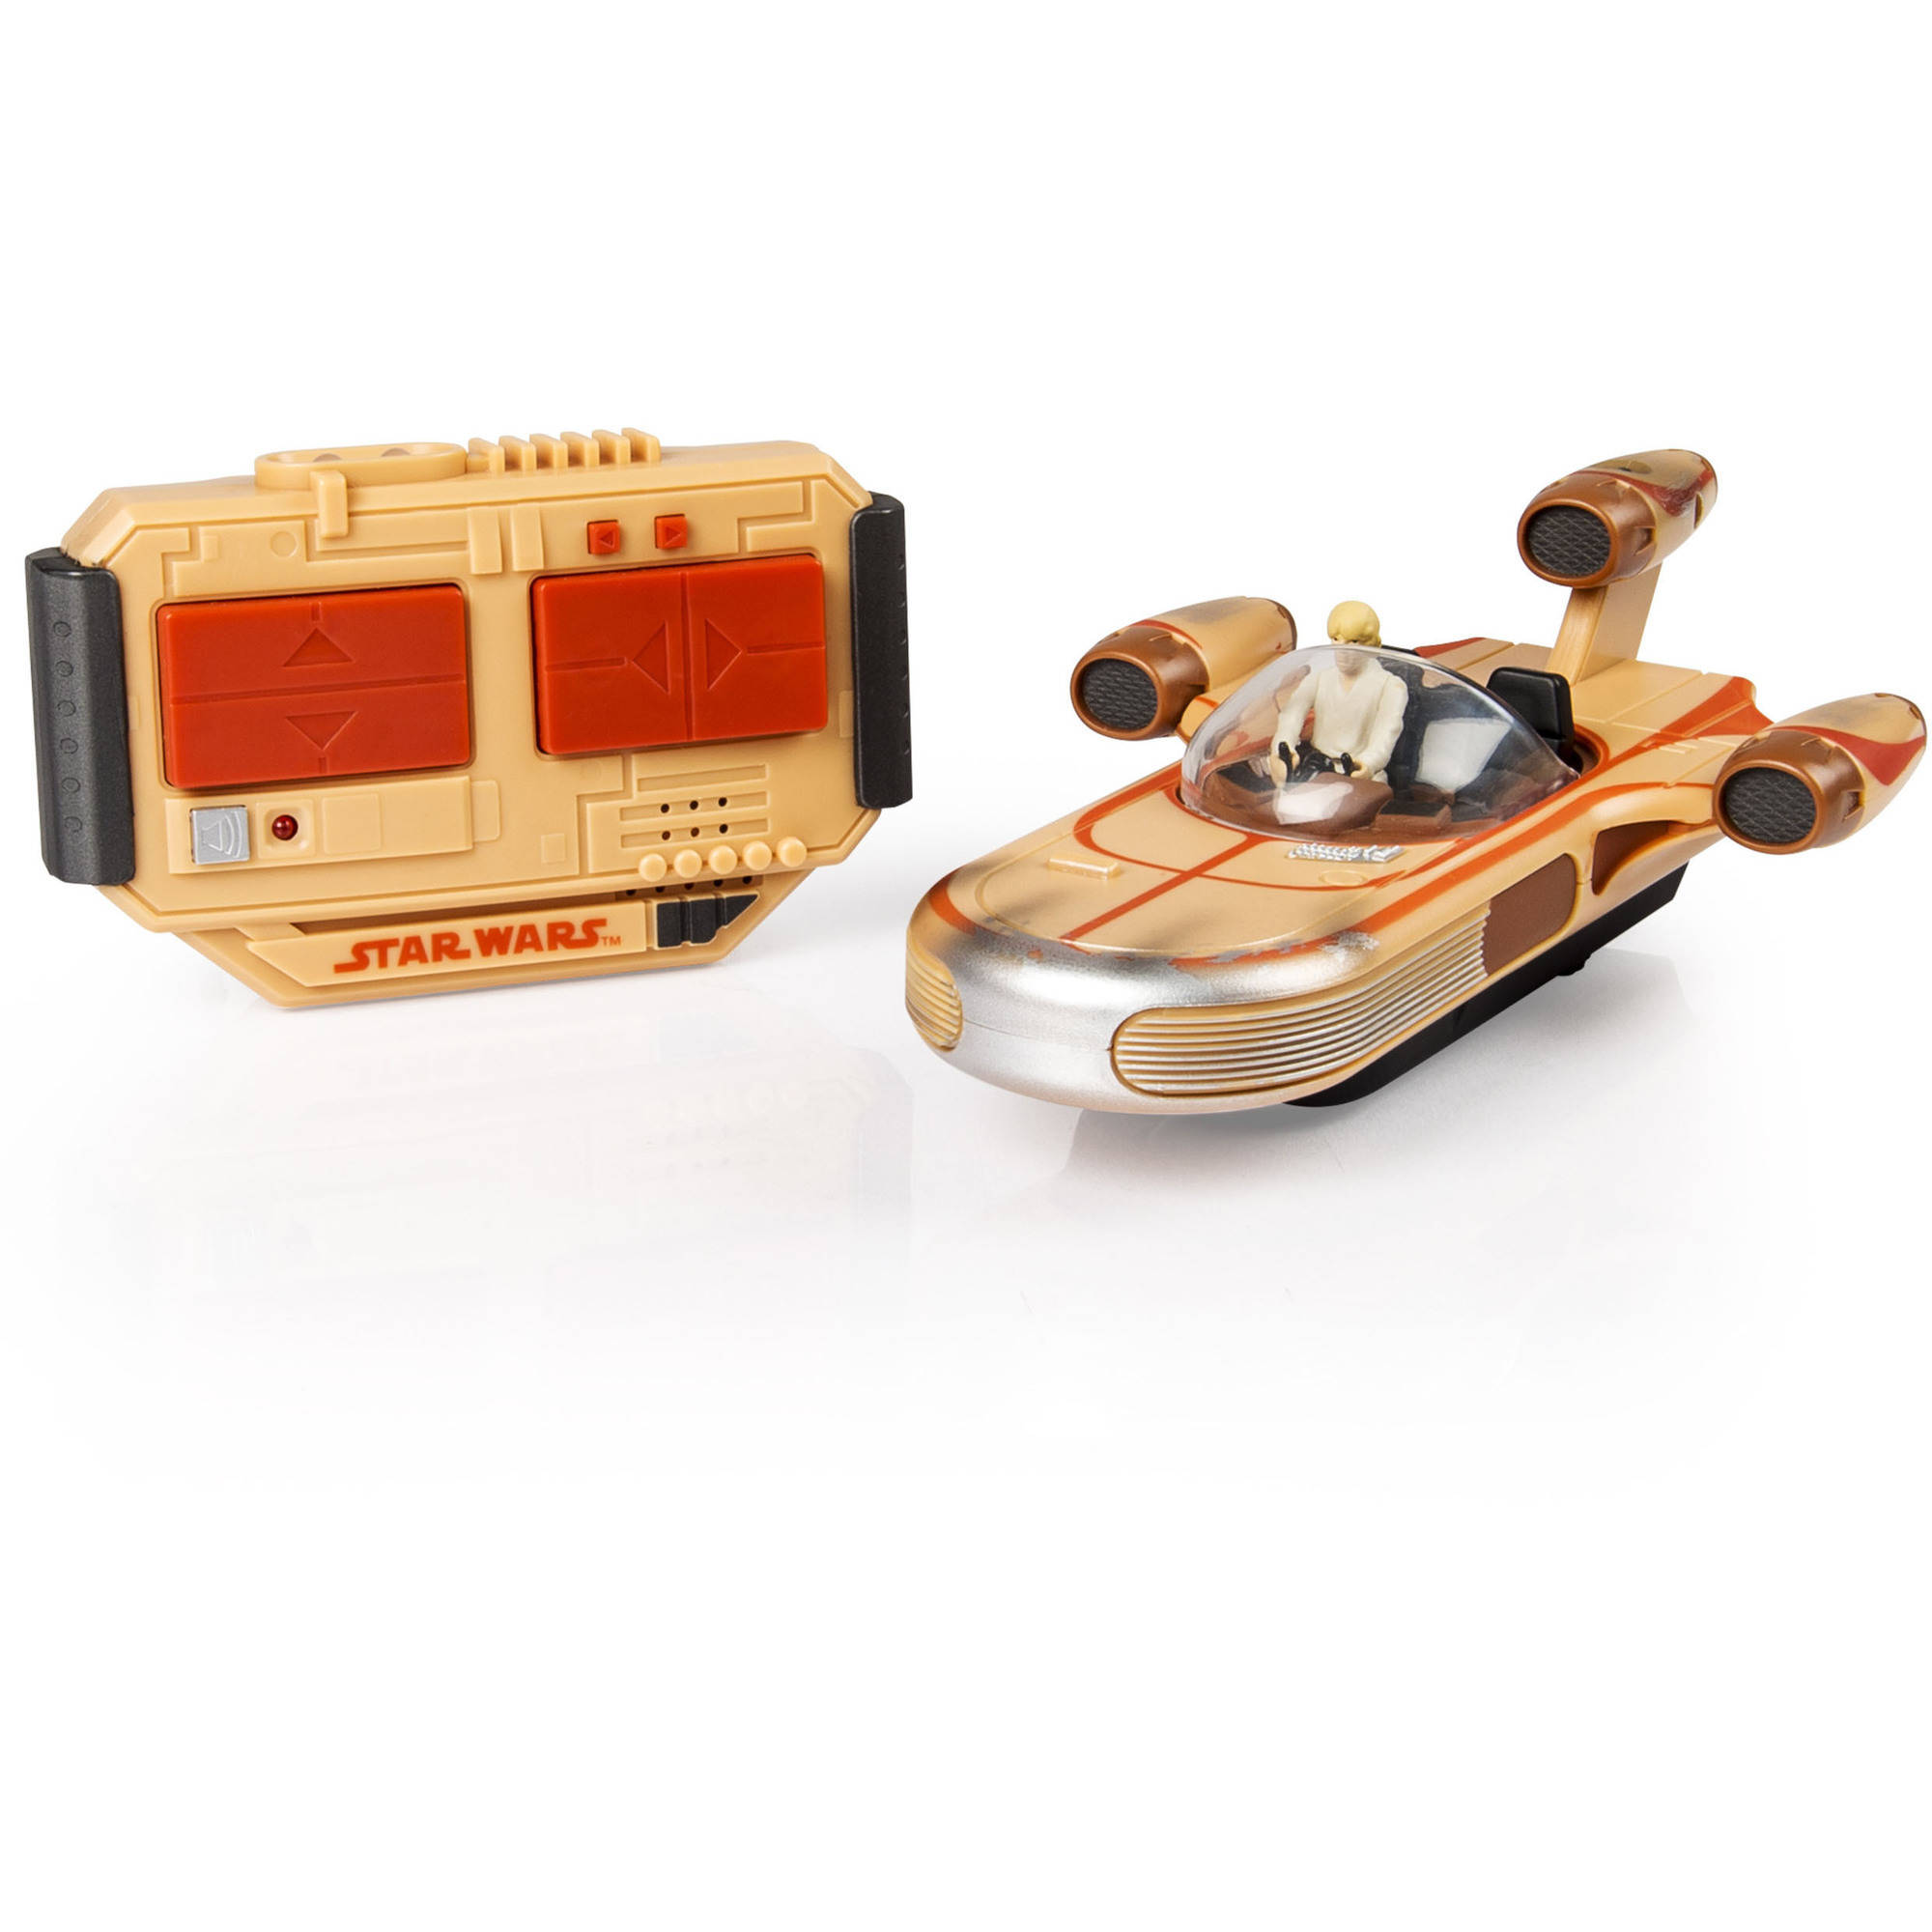 Air Hogs Star Wars Remote Control X-34 Landspeeder by DONG GUAN LAM SUN PLASTIC PRODUCTS CO.,LTD